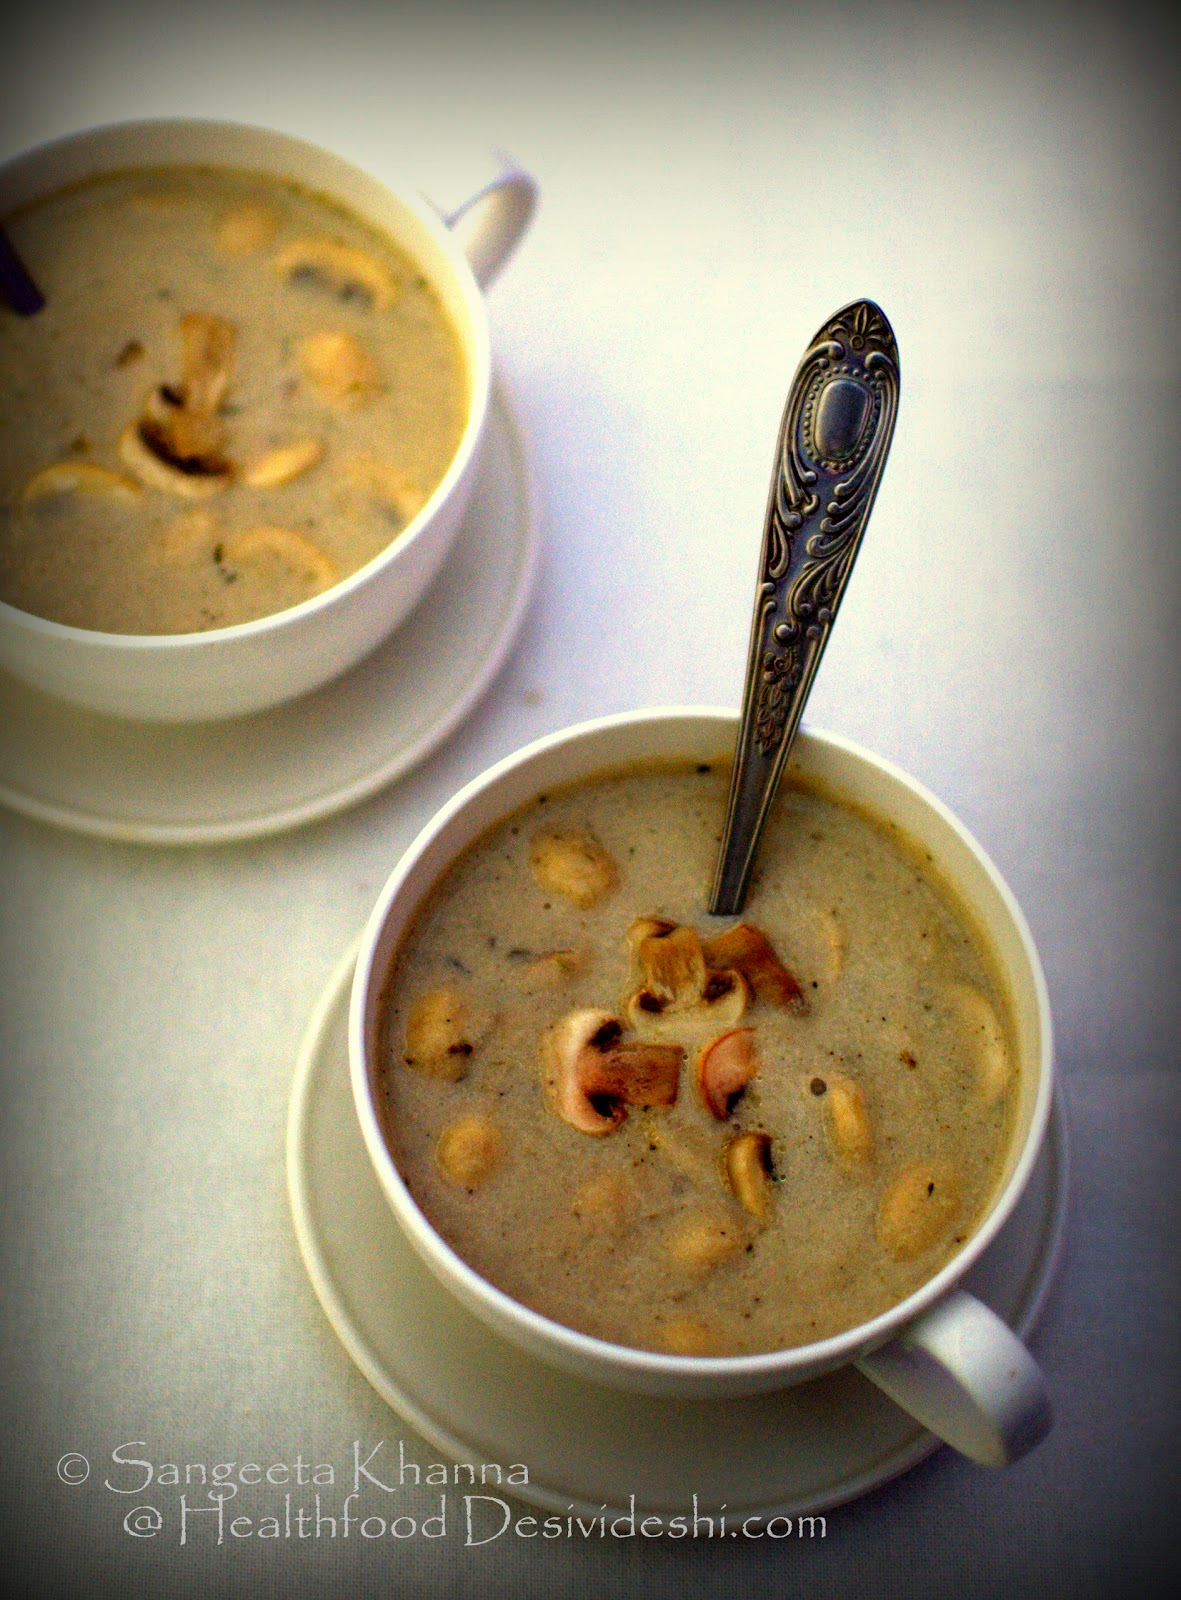 cauliflower and mushroom soup with a hint of caramalised onions | eating seasonal and local produce mindfully